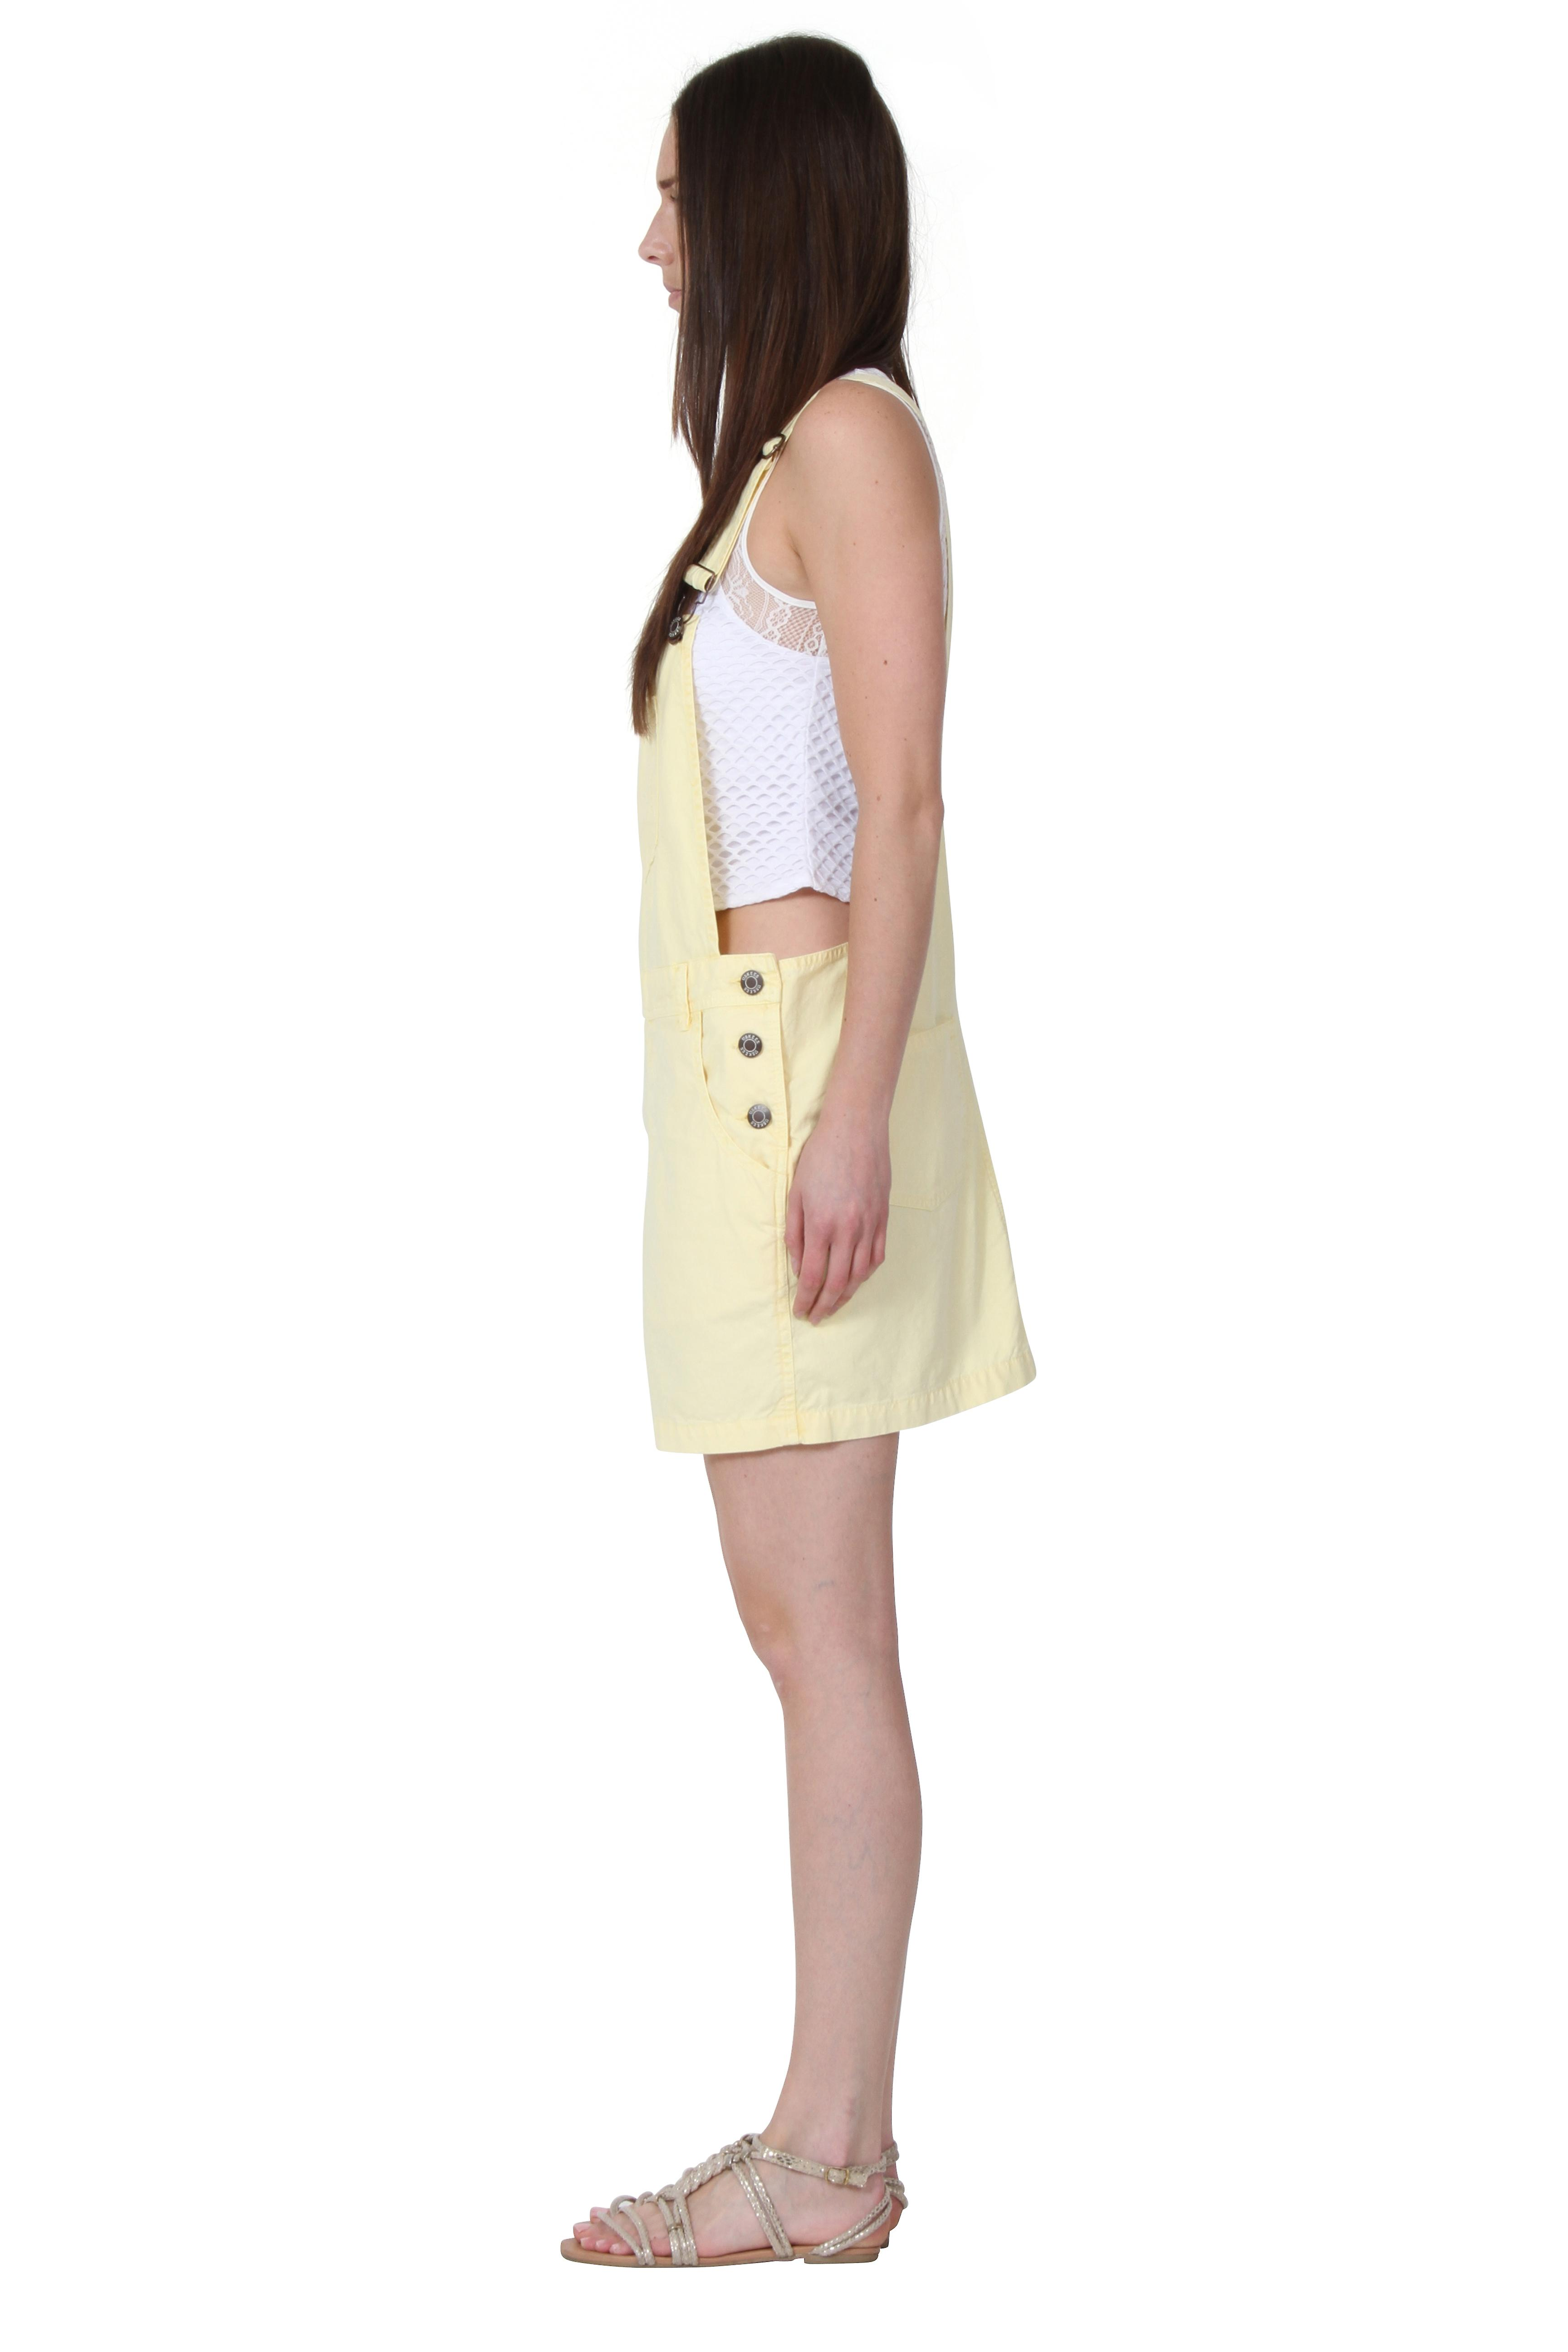 USKEES CLAIRE Short Oversized Dungaree Overall Dress Bib overall skirt relaxed l